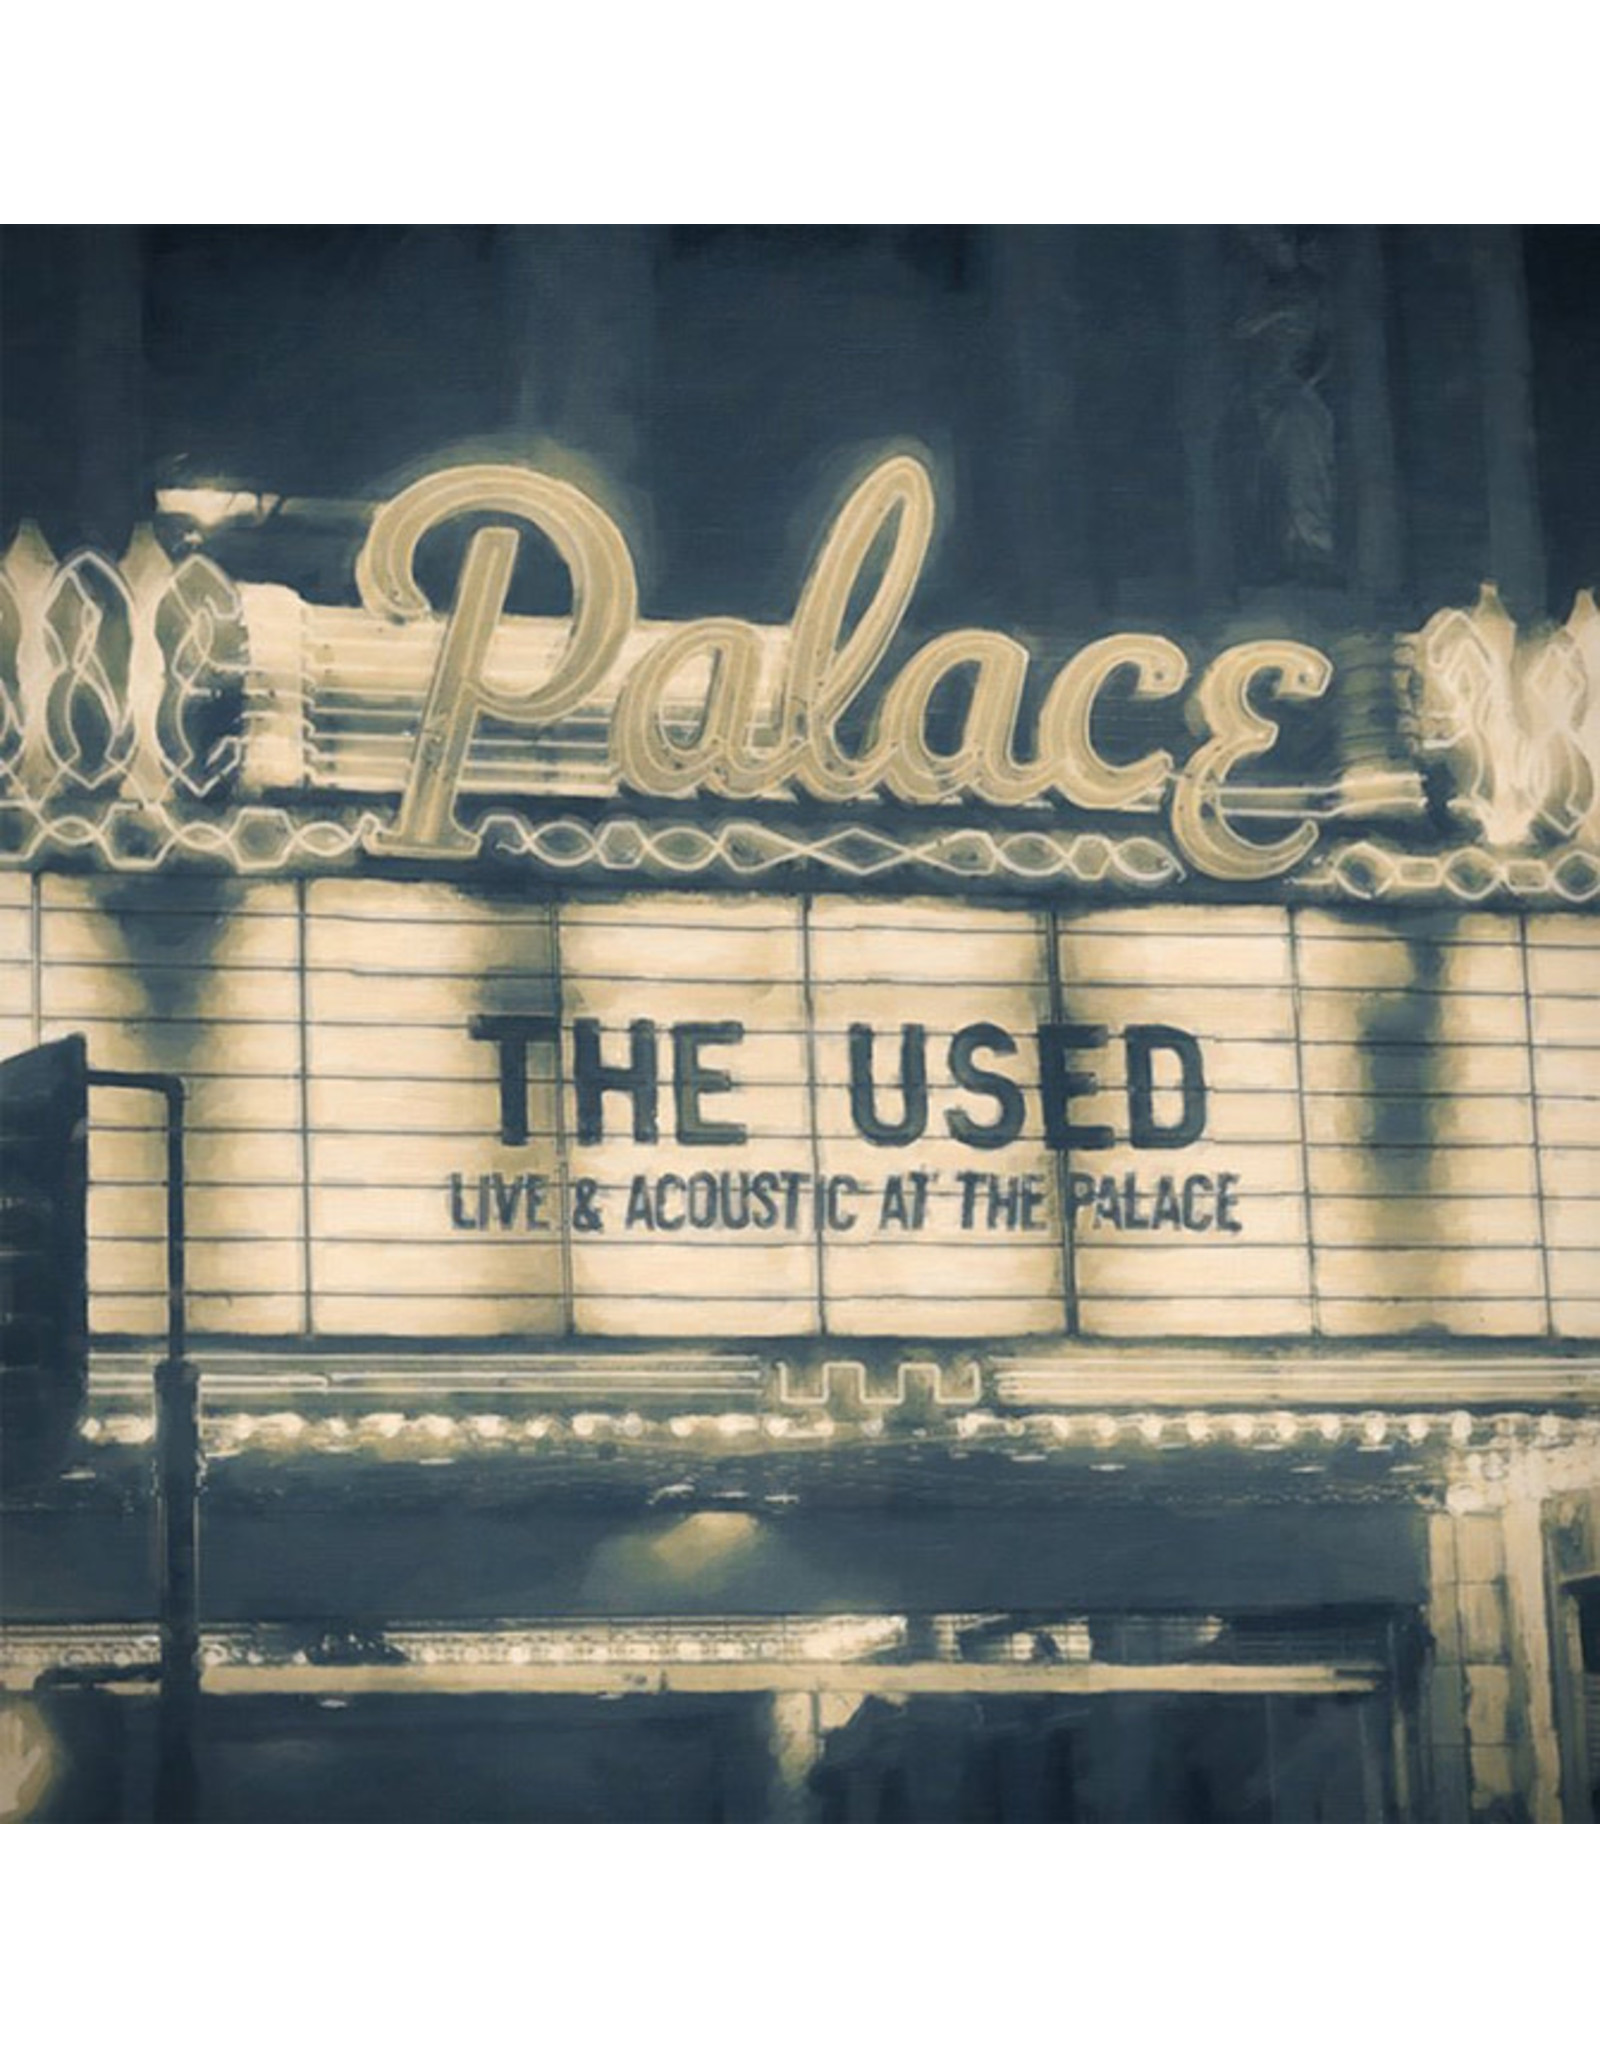 Used - Live and Acoustic at the Palace LP